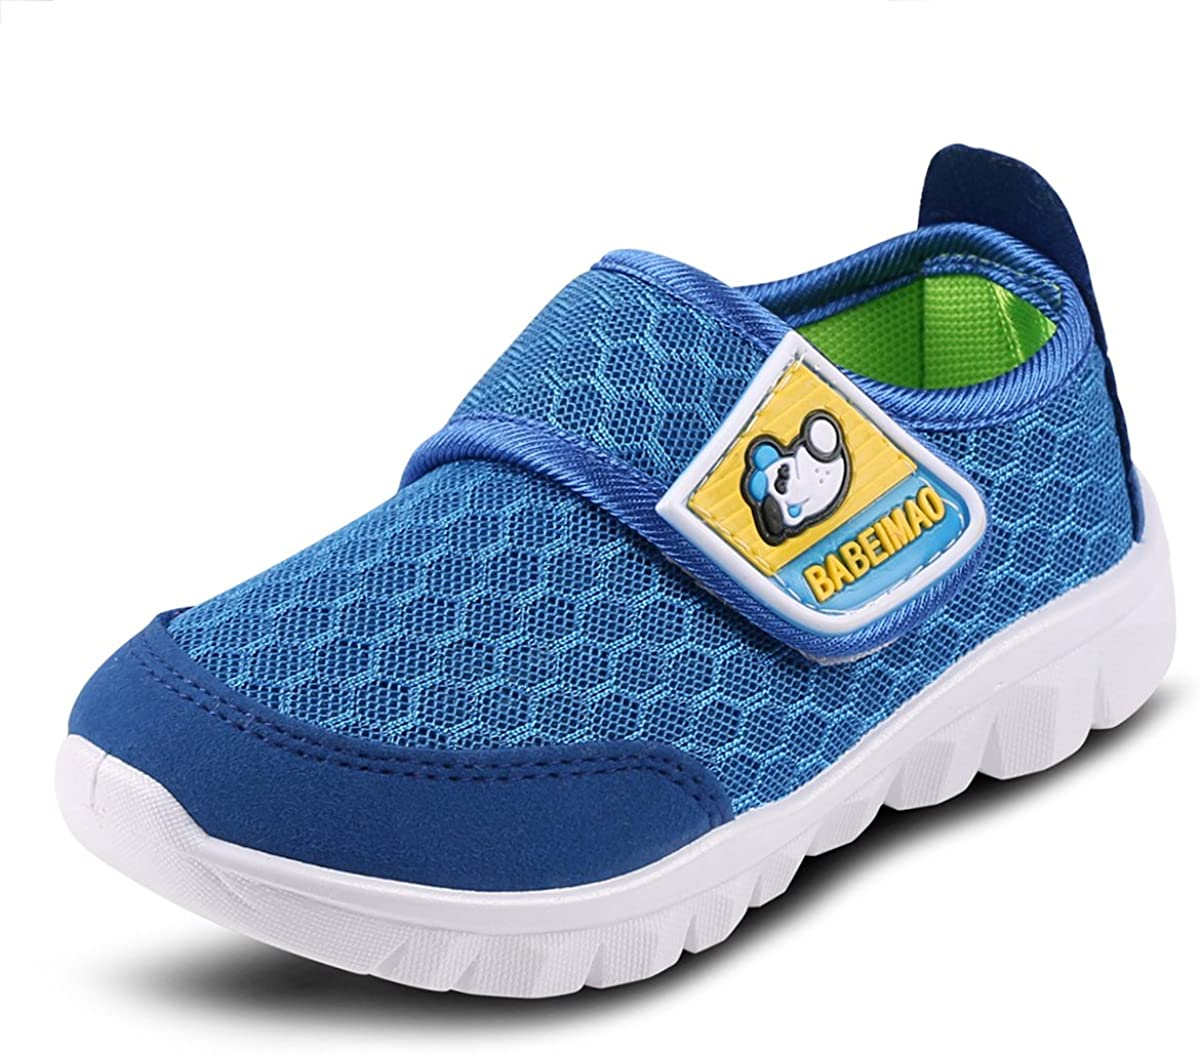 Boys Girls Lightweight Walking Shoes Comfortable Casual Shoes Slip on Sneakers